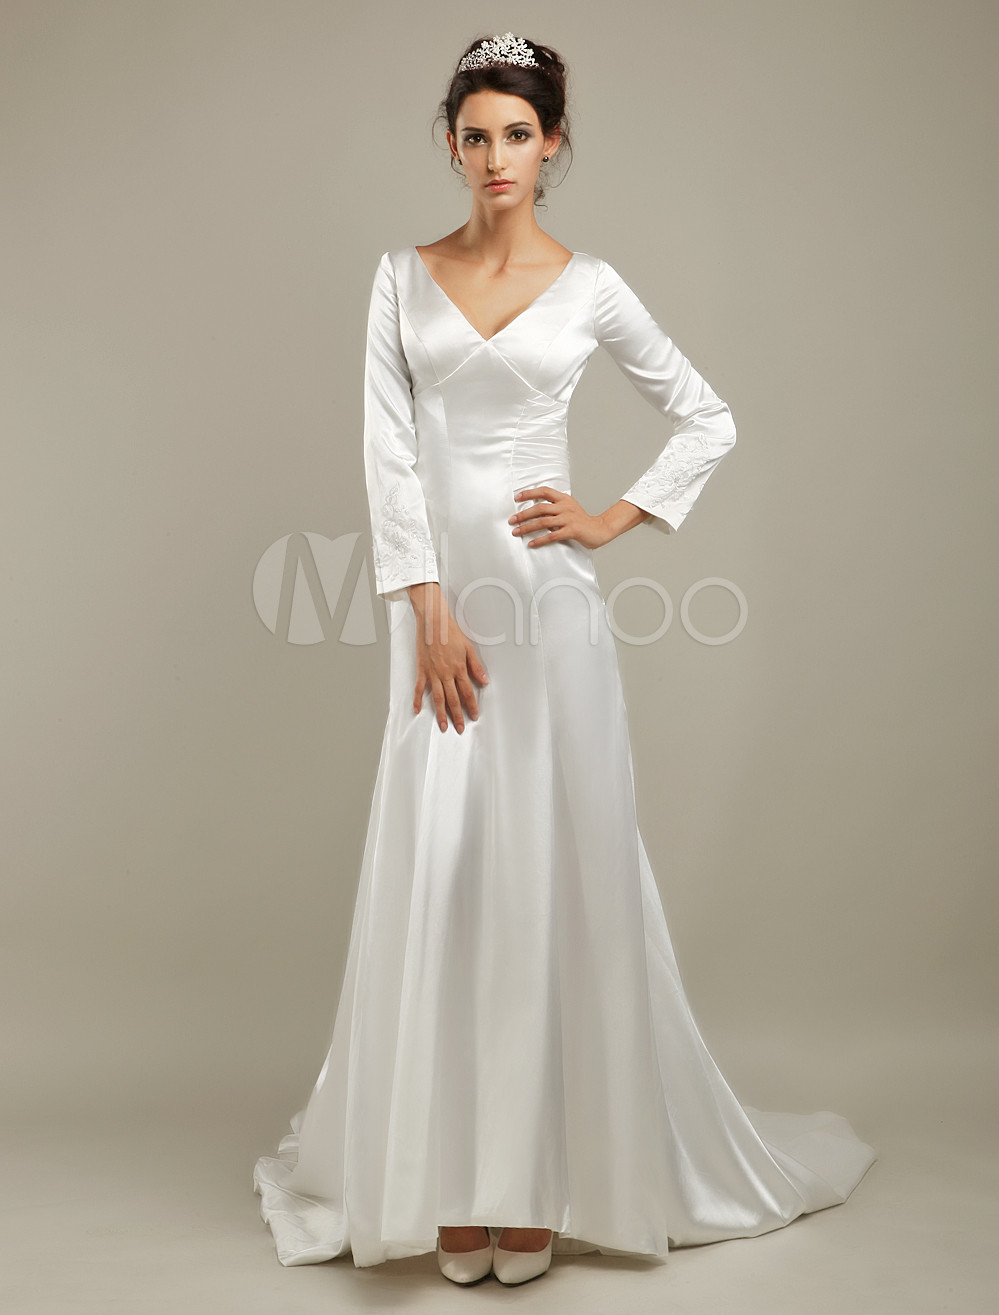 Similar To Bella Swan S Dress But Not As Tight Wedding Dresses I